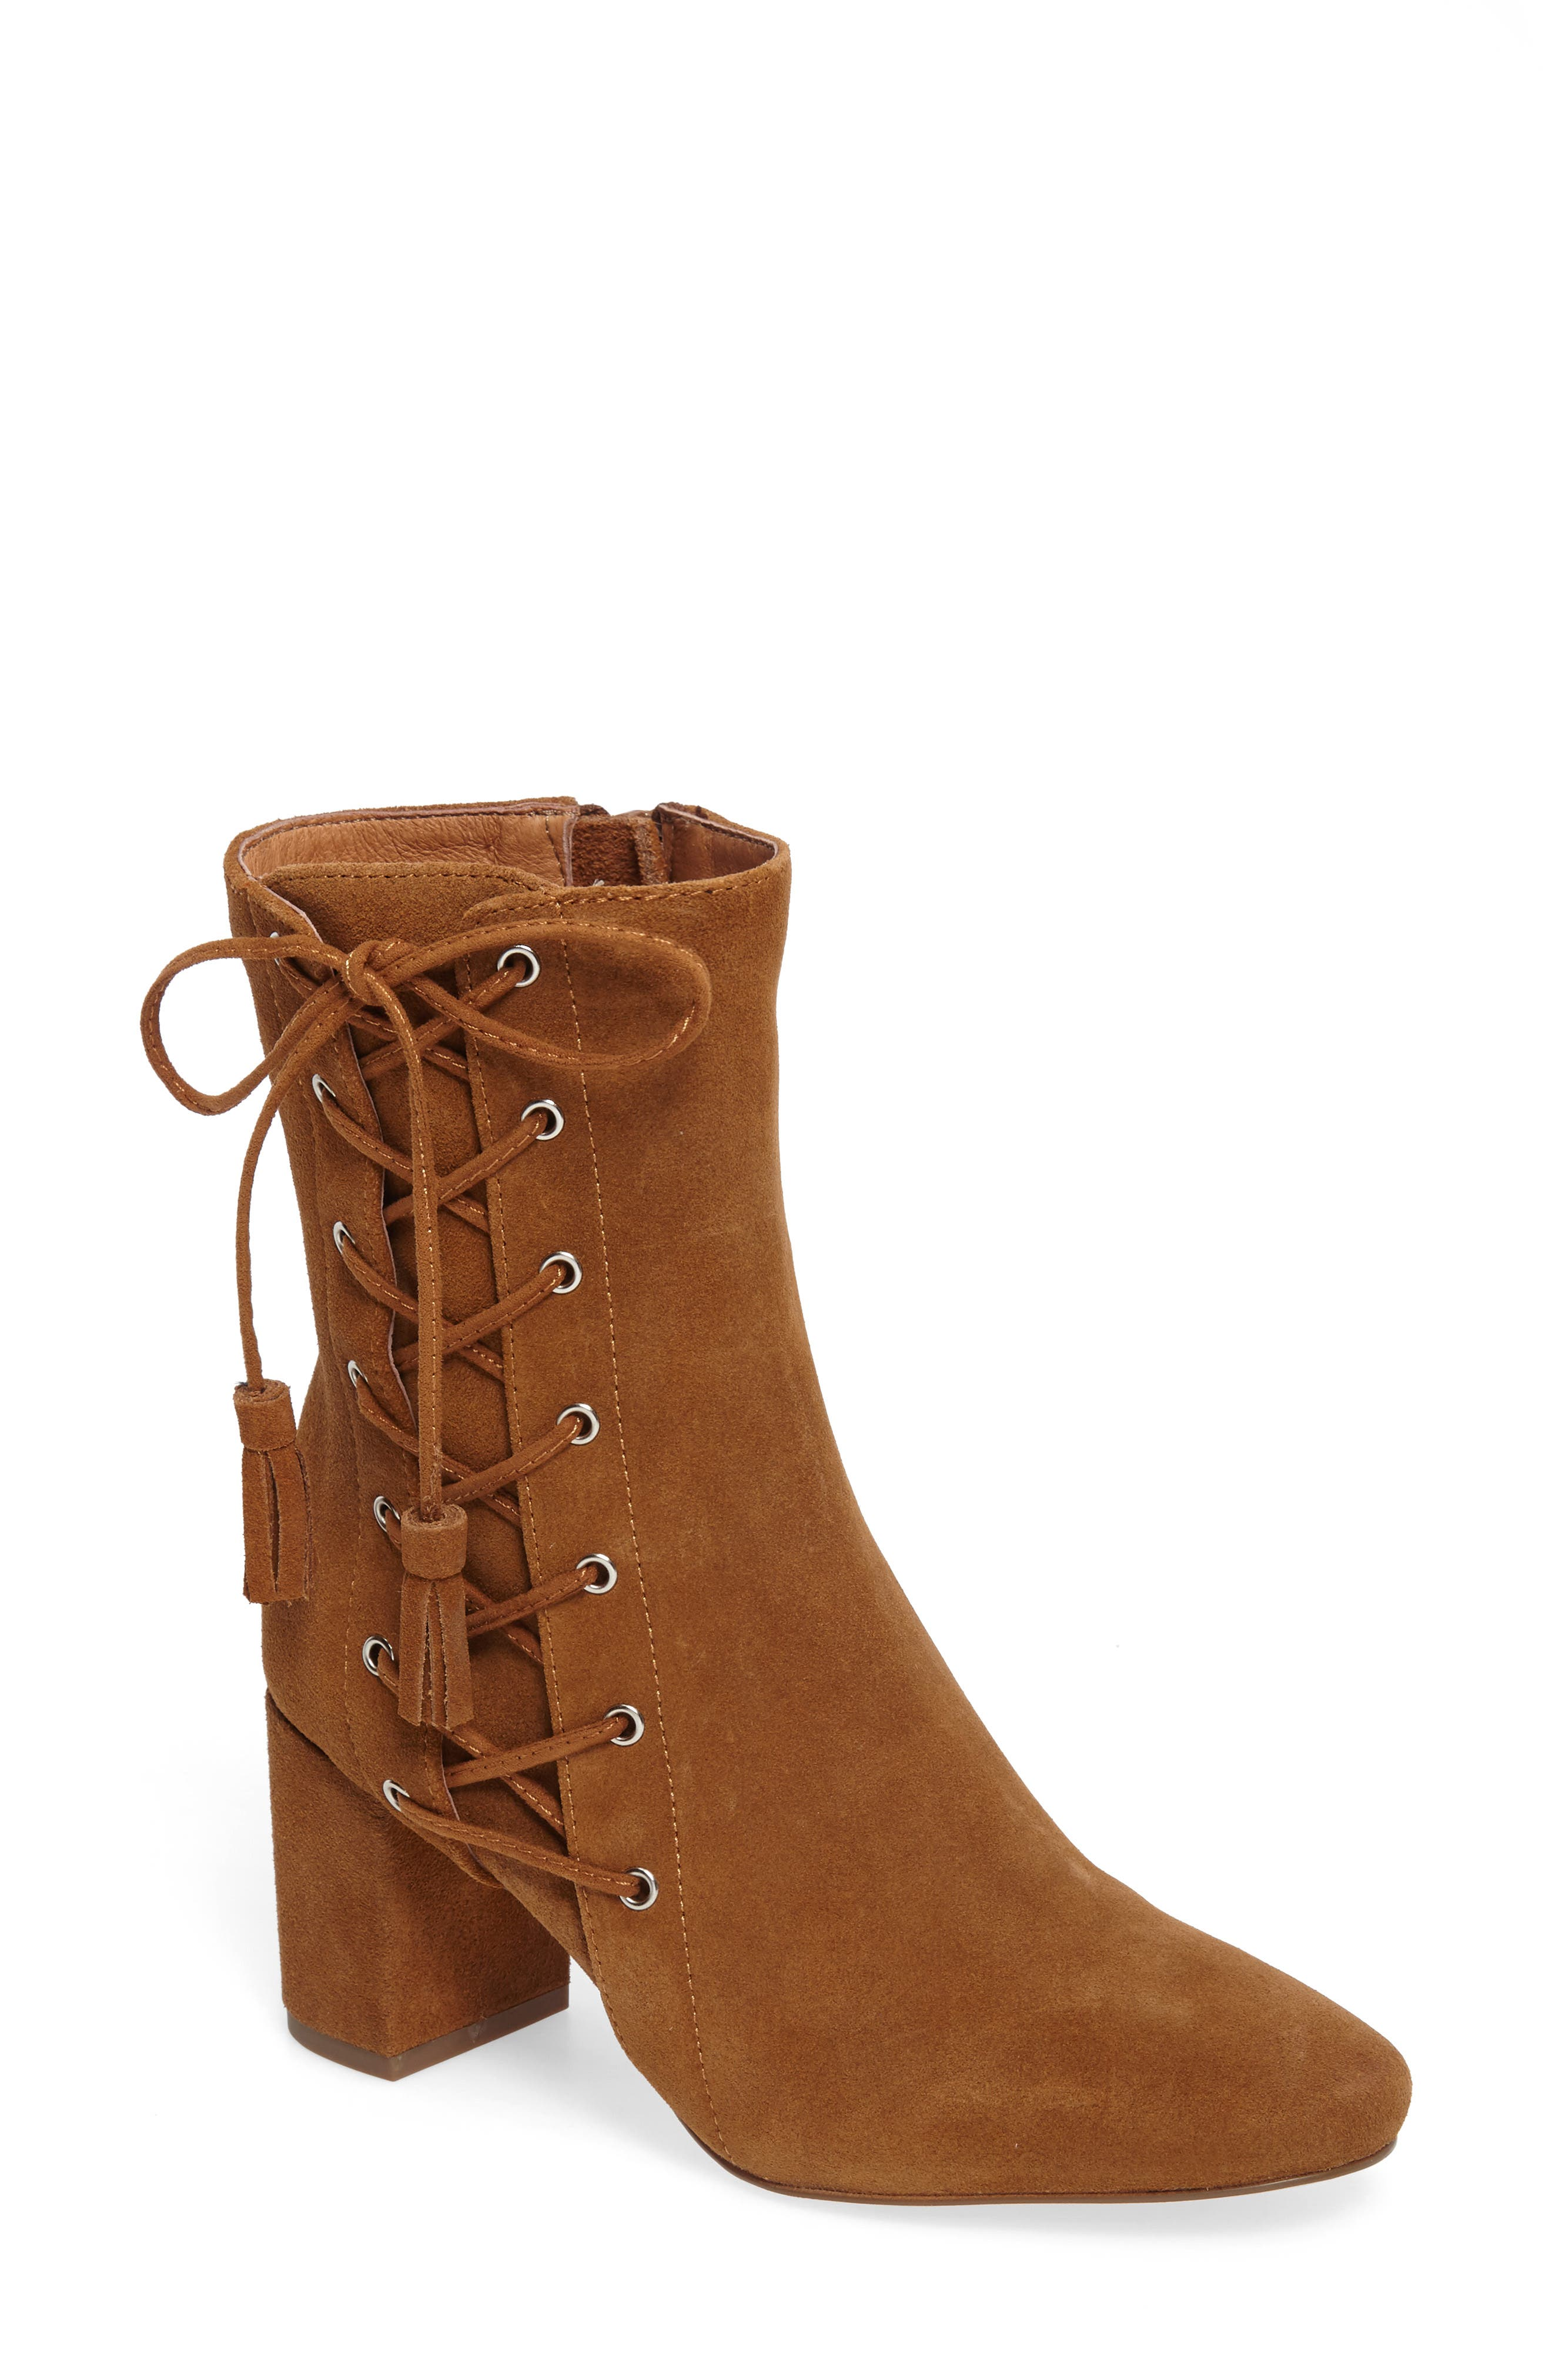 Alternate Image 1 Selected - Matisse Harp Lace-Up Bootie (Women)